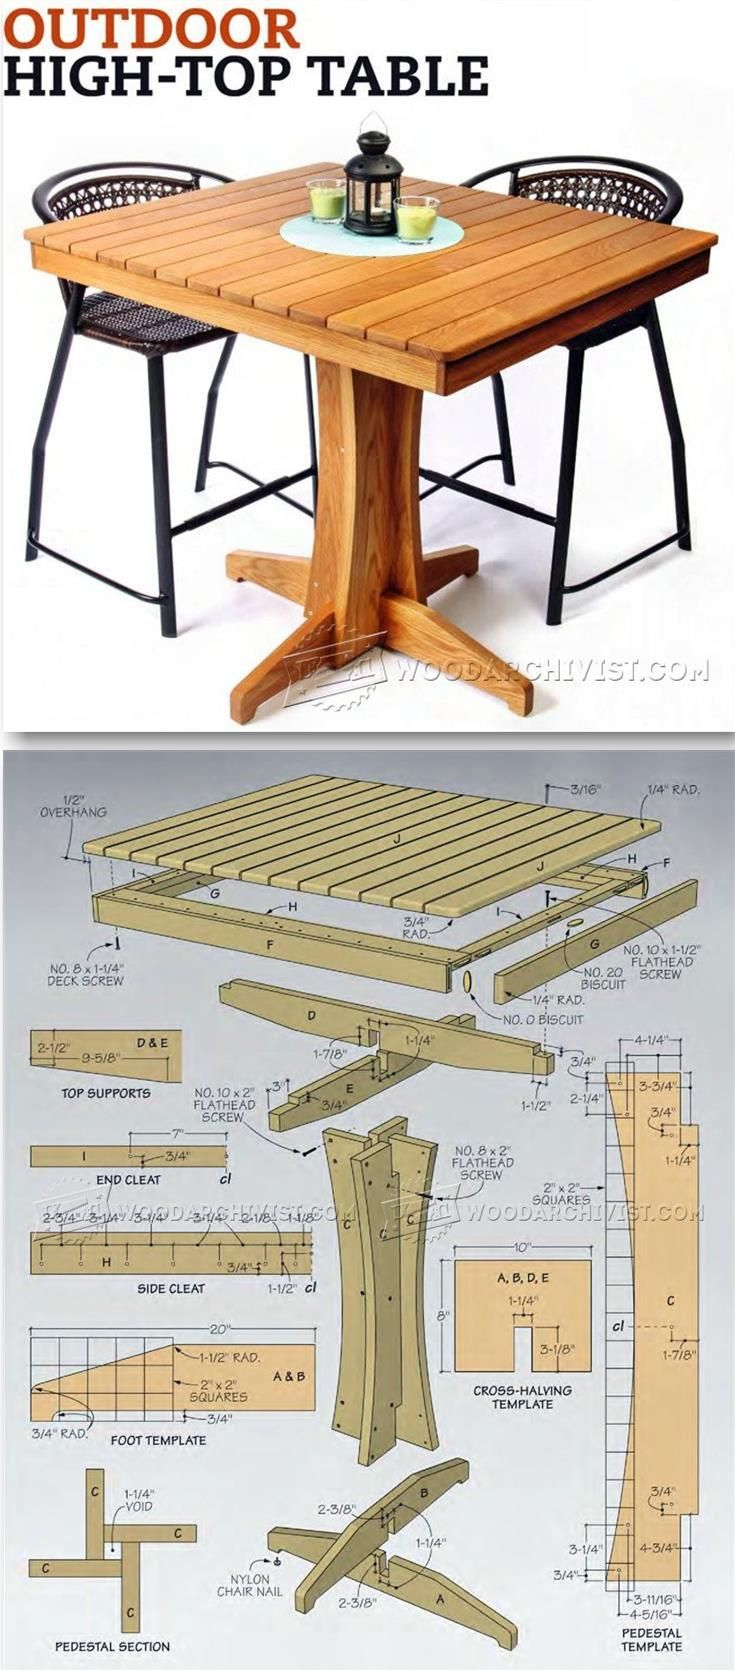 outdoor high top table plans outdoor furniture plans projects